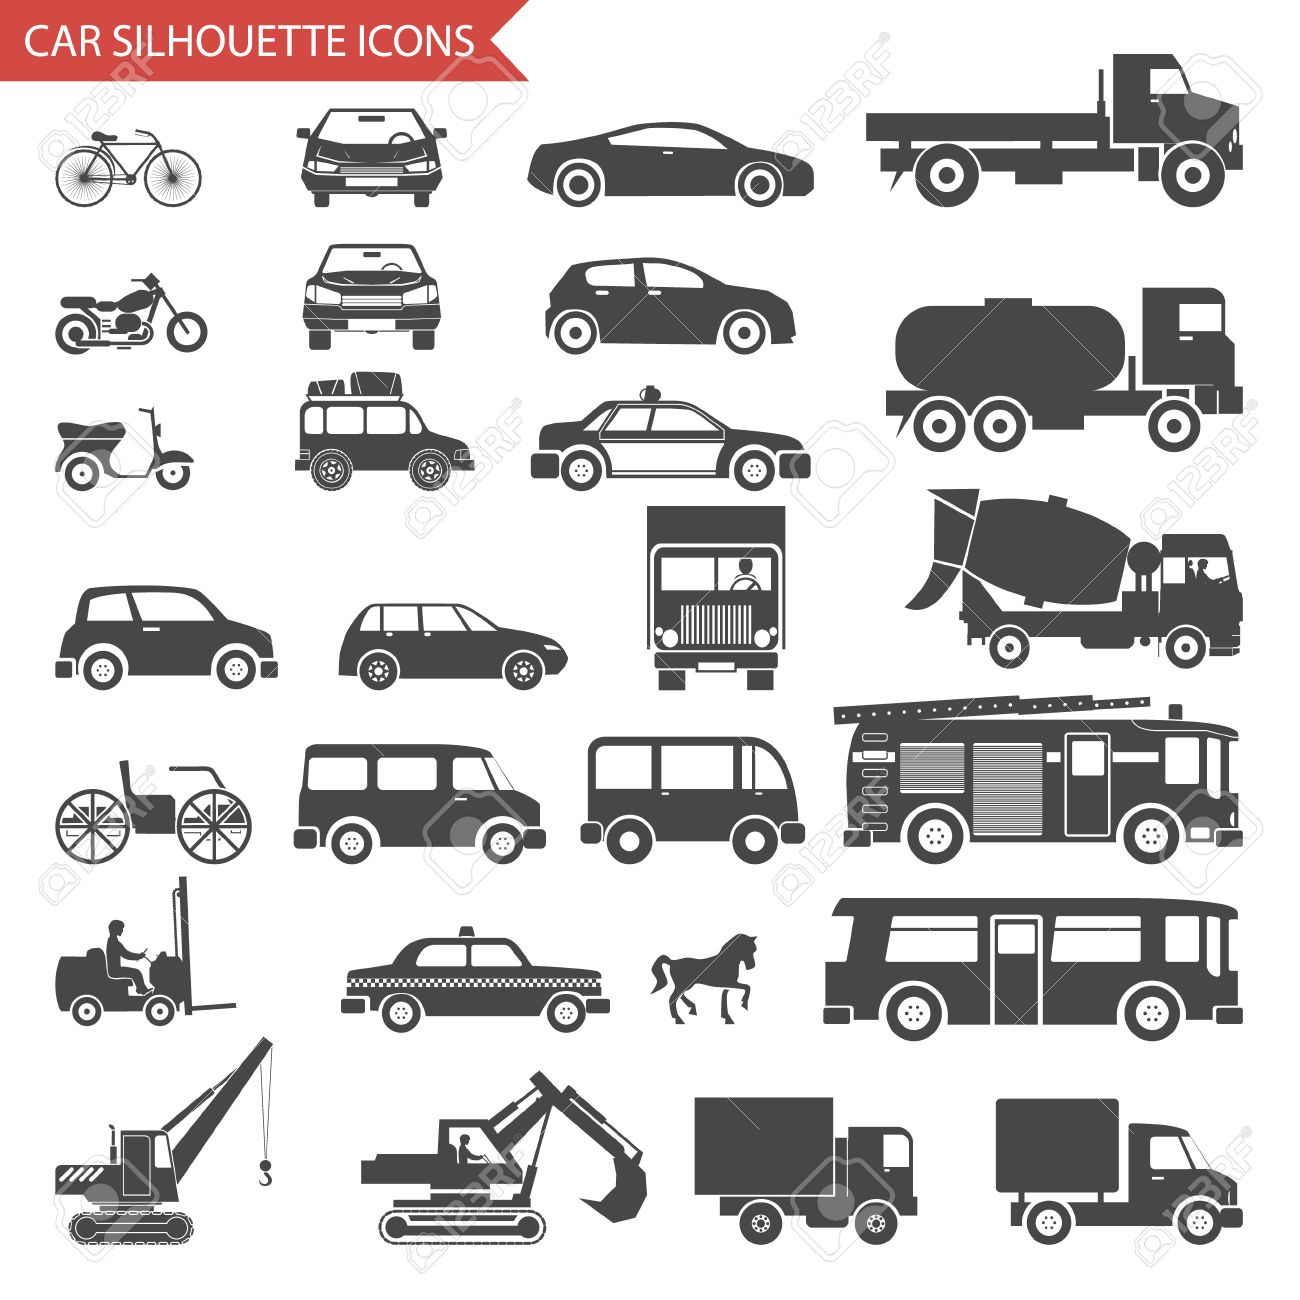 Cars and vehicles silhouette icons transport symbols set vector cars and vehicles silhouette icons transport symbols set vector illustration stock vector 29240113 biocorpaavc